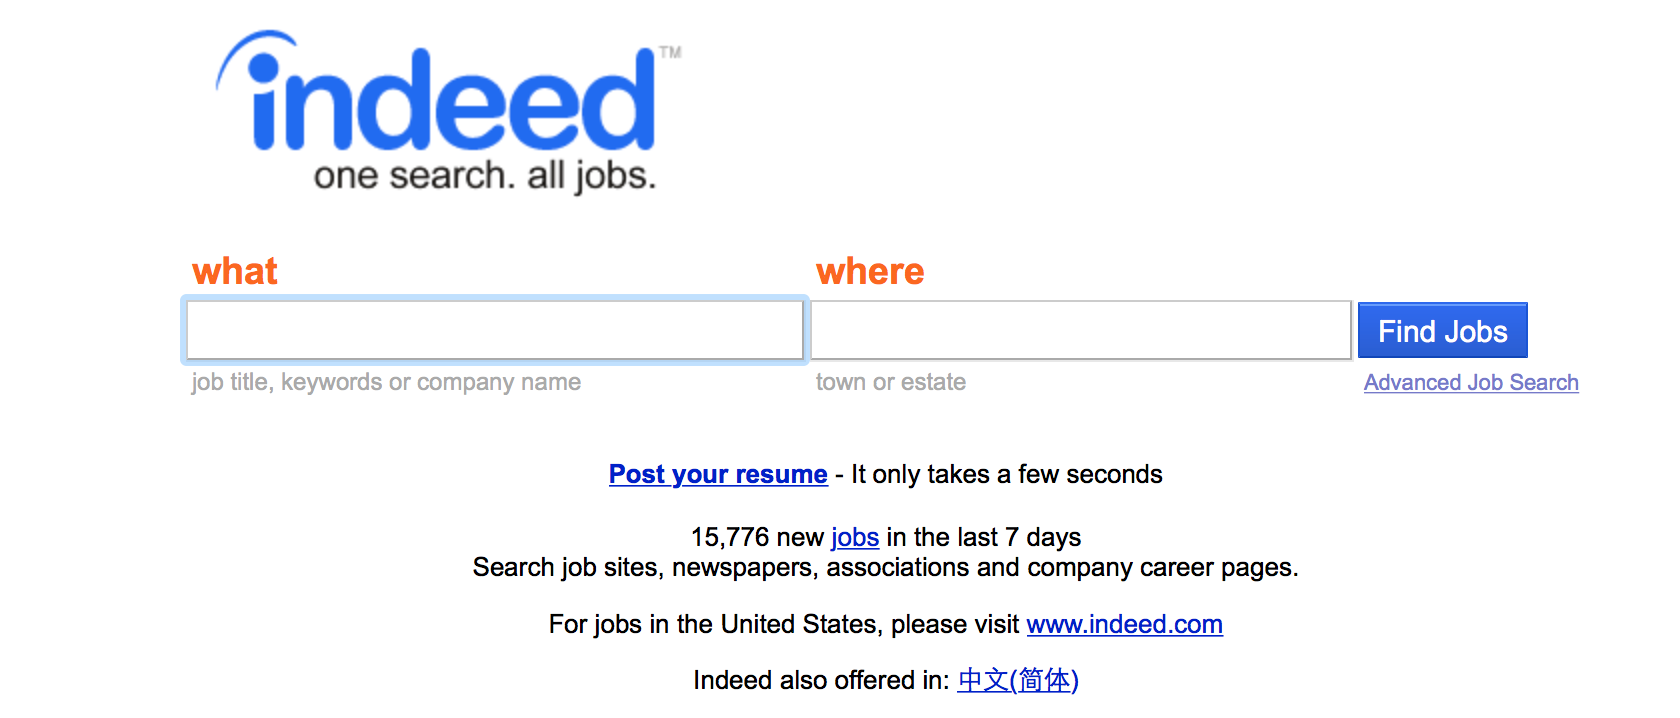 10 Awesome Tools Every Job Seeker Needs To Know About